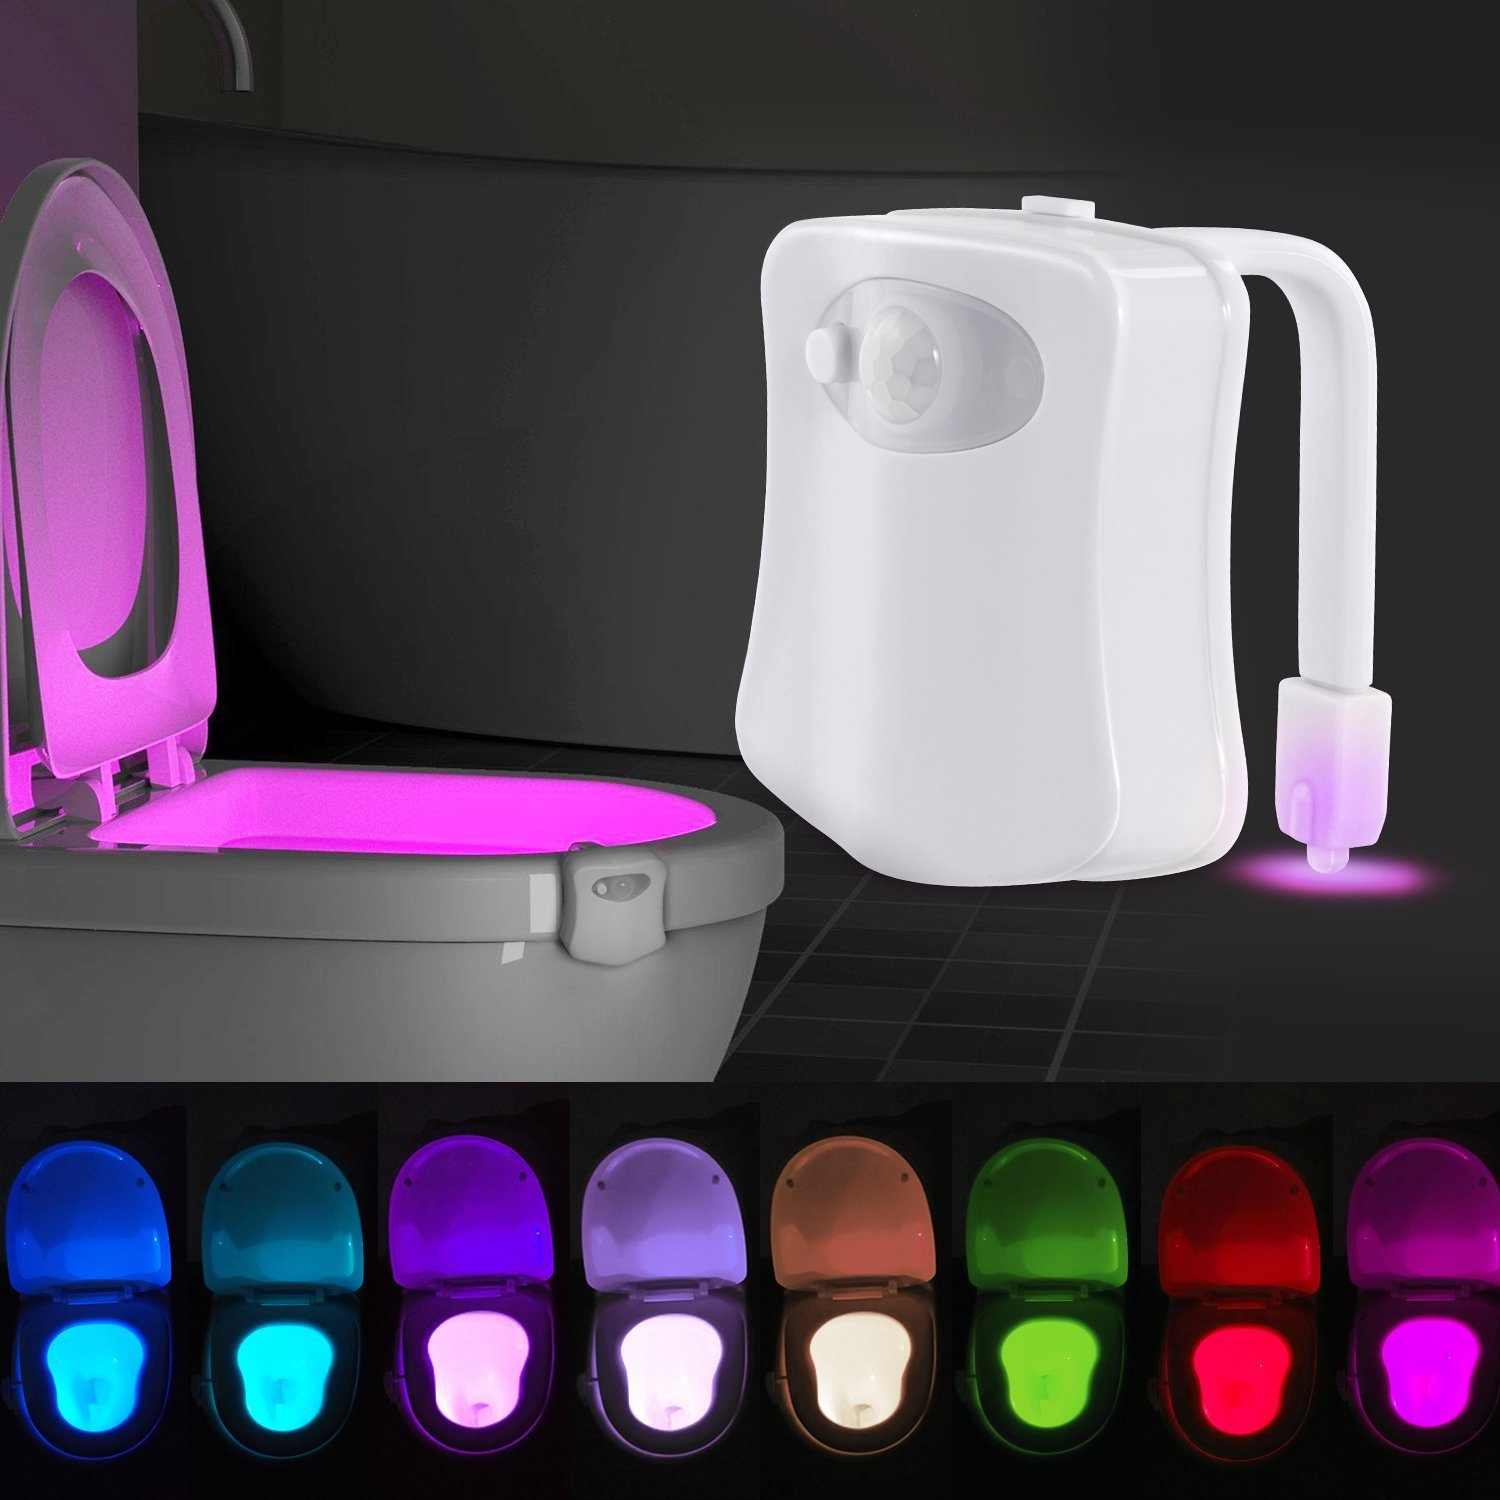 8 Color Sensor Toilet Seat Novelty LED Light Lamp Human Body Induction Toilet Lamp Night Light Bathroom Lighting